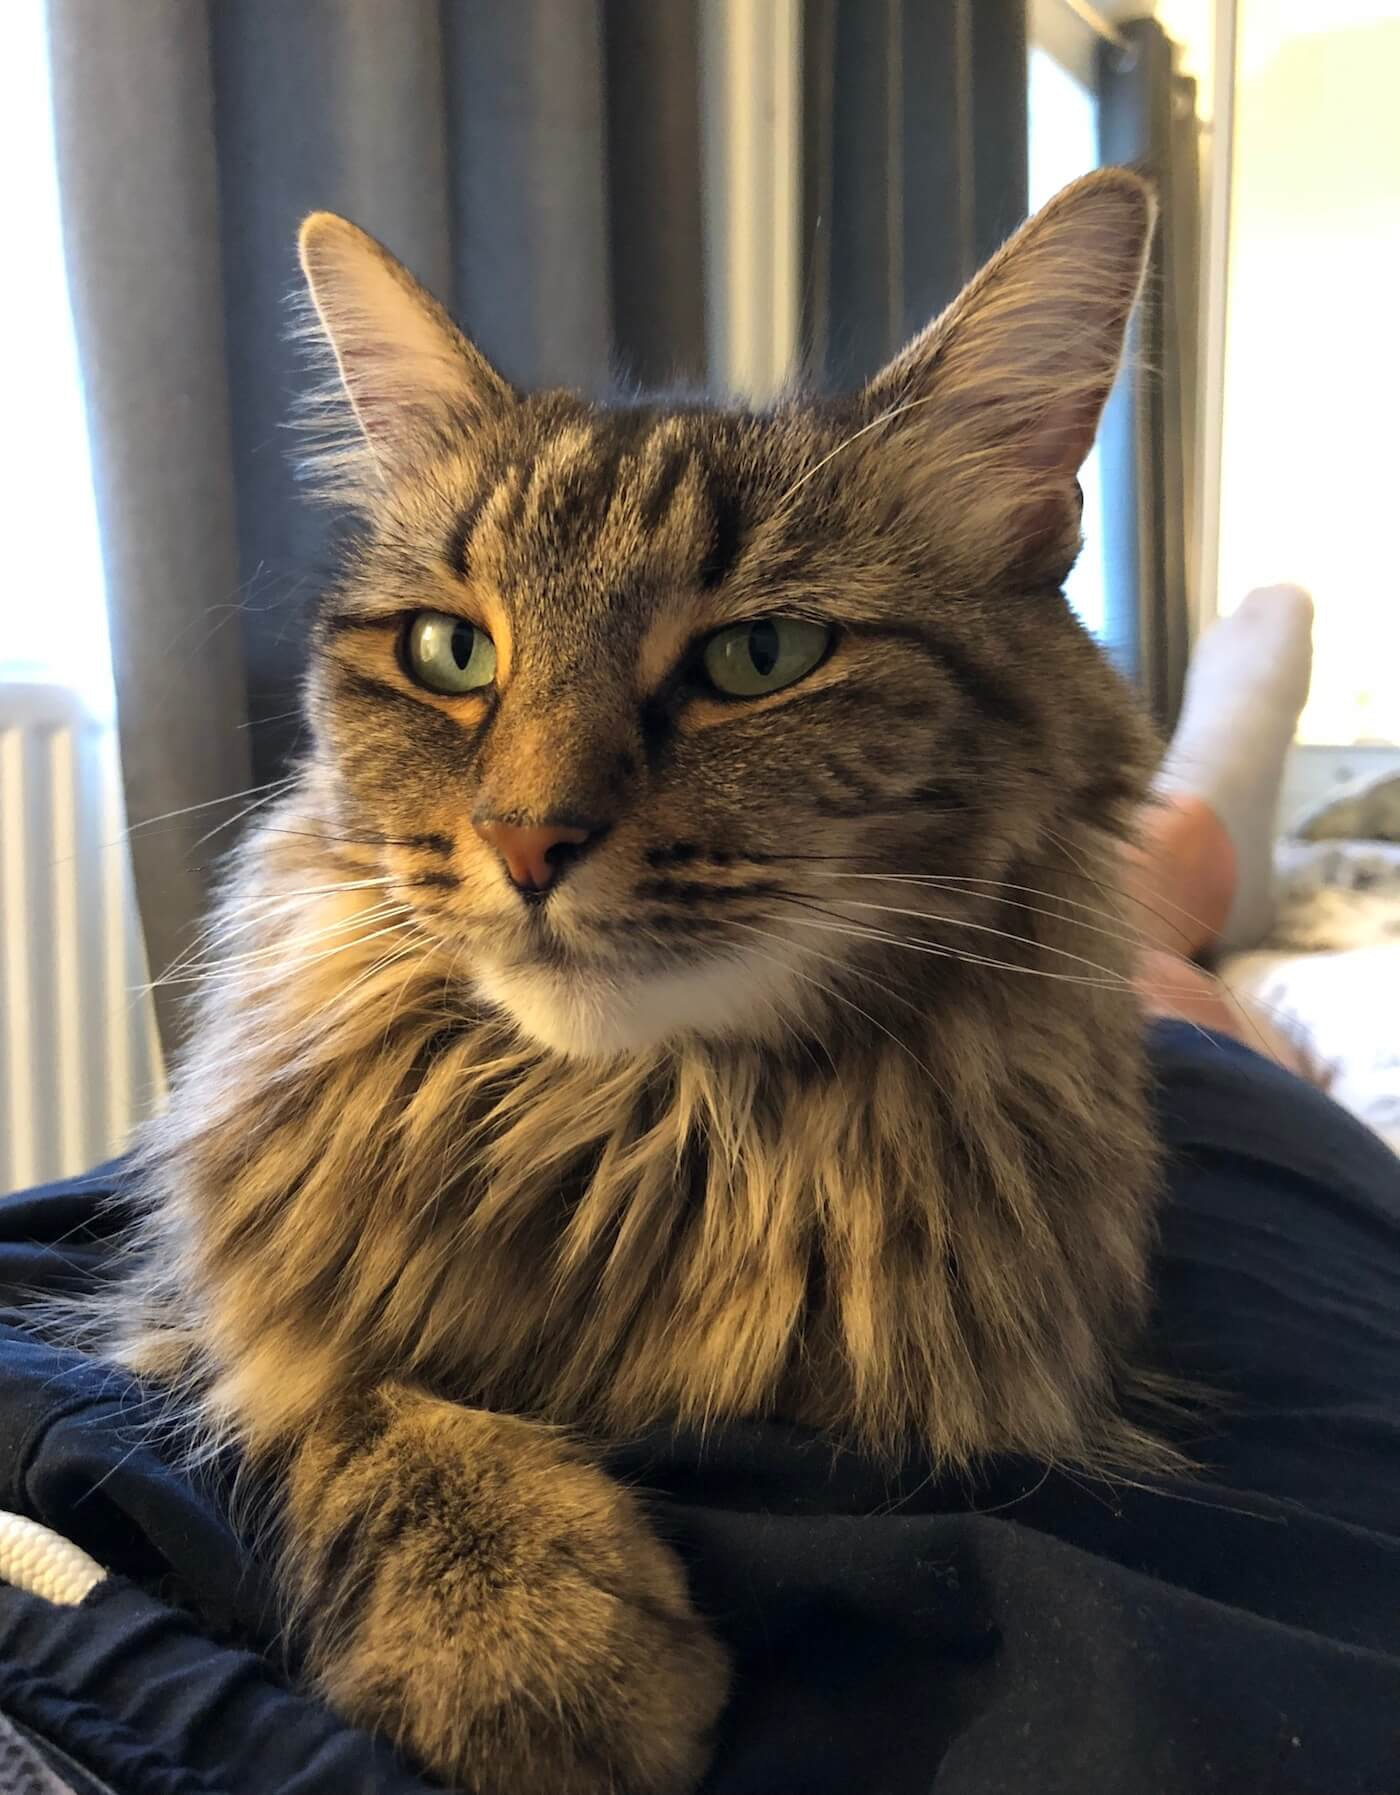 Delilah, a stripey, fluffy cat, sat on my lap looking majestic